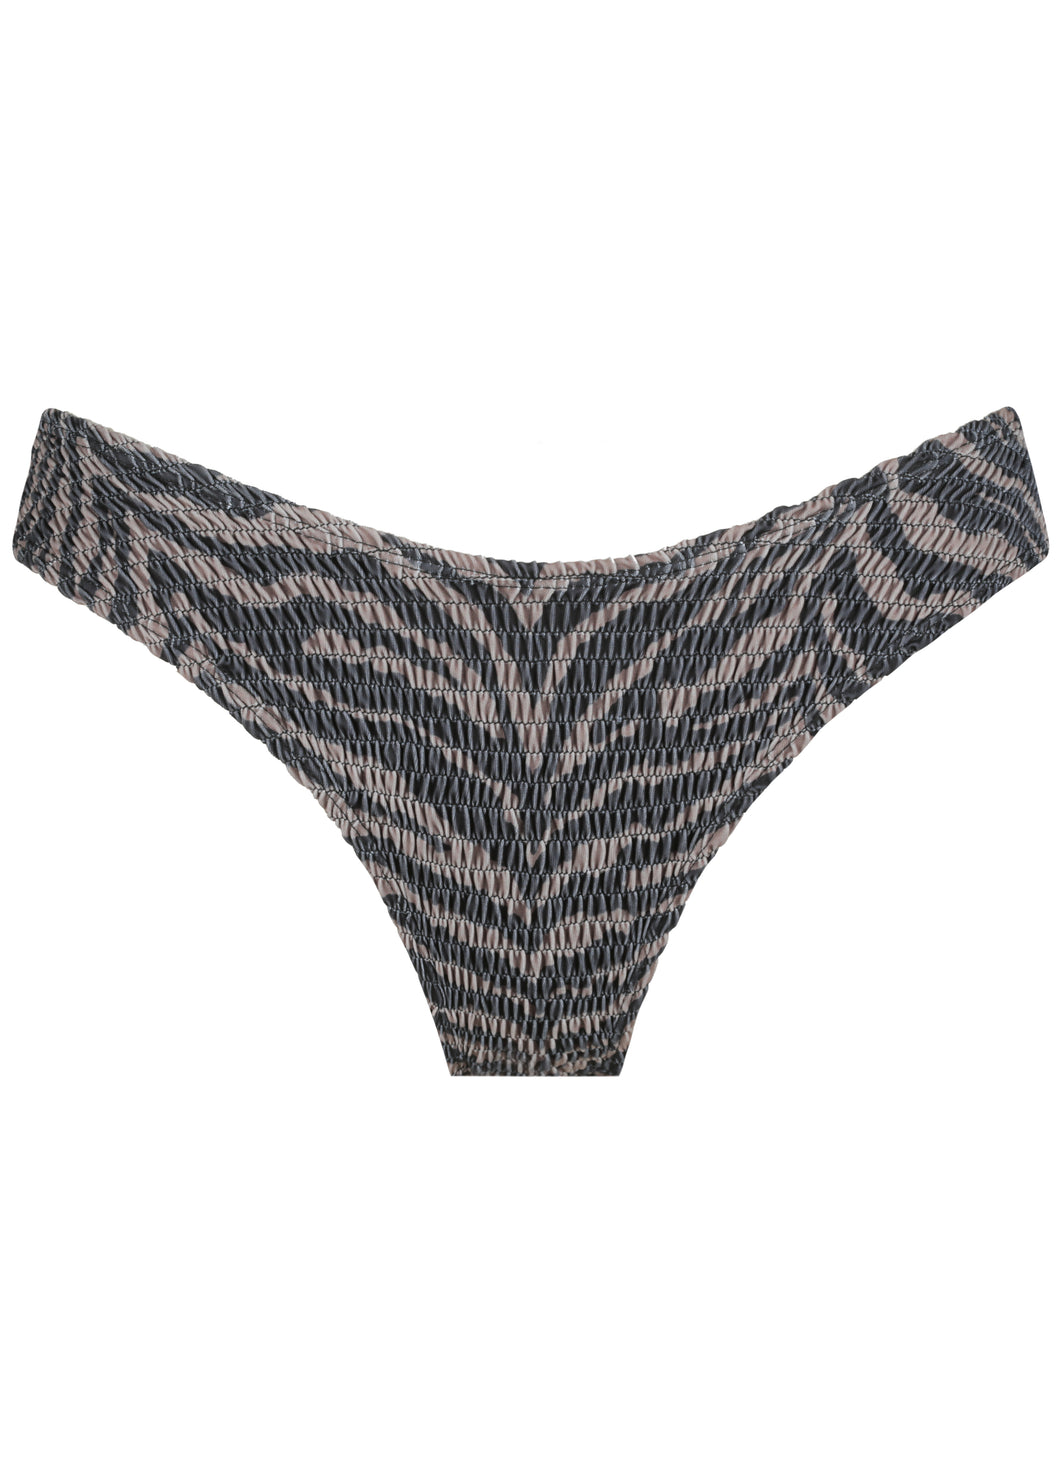 Twiggy Shirring Bottom - Zebra